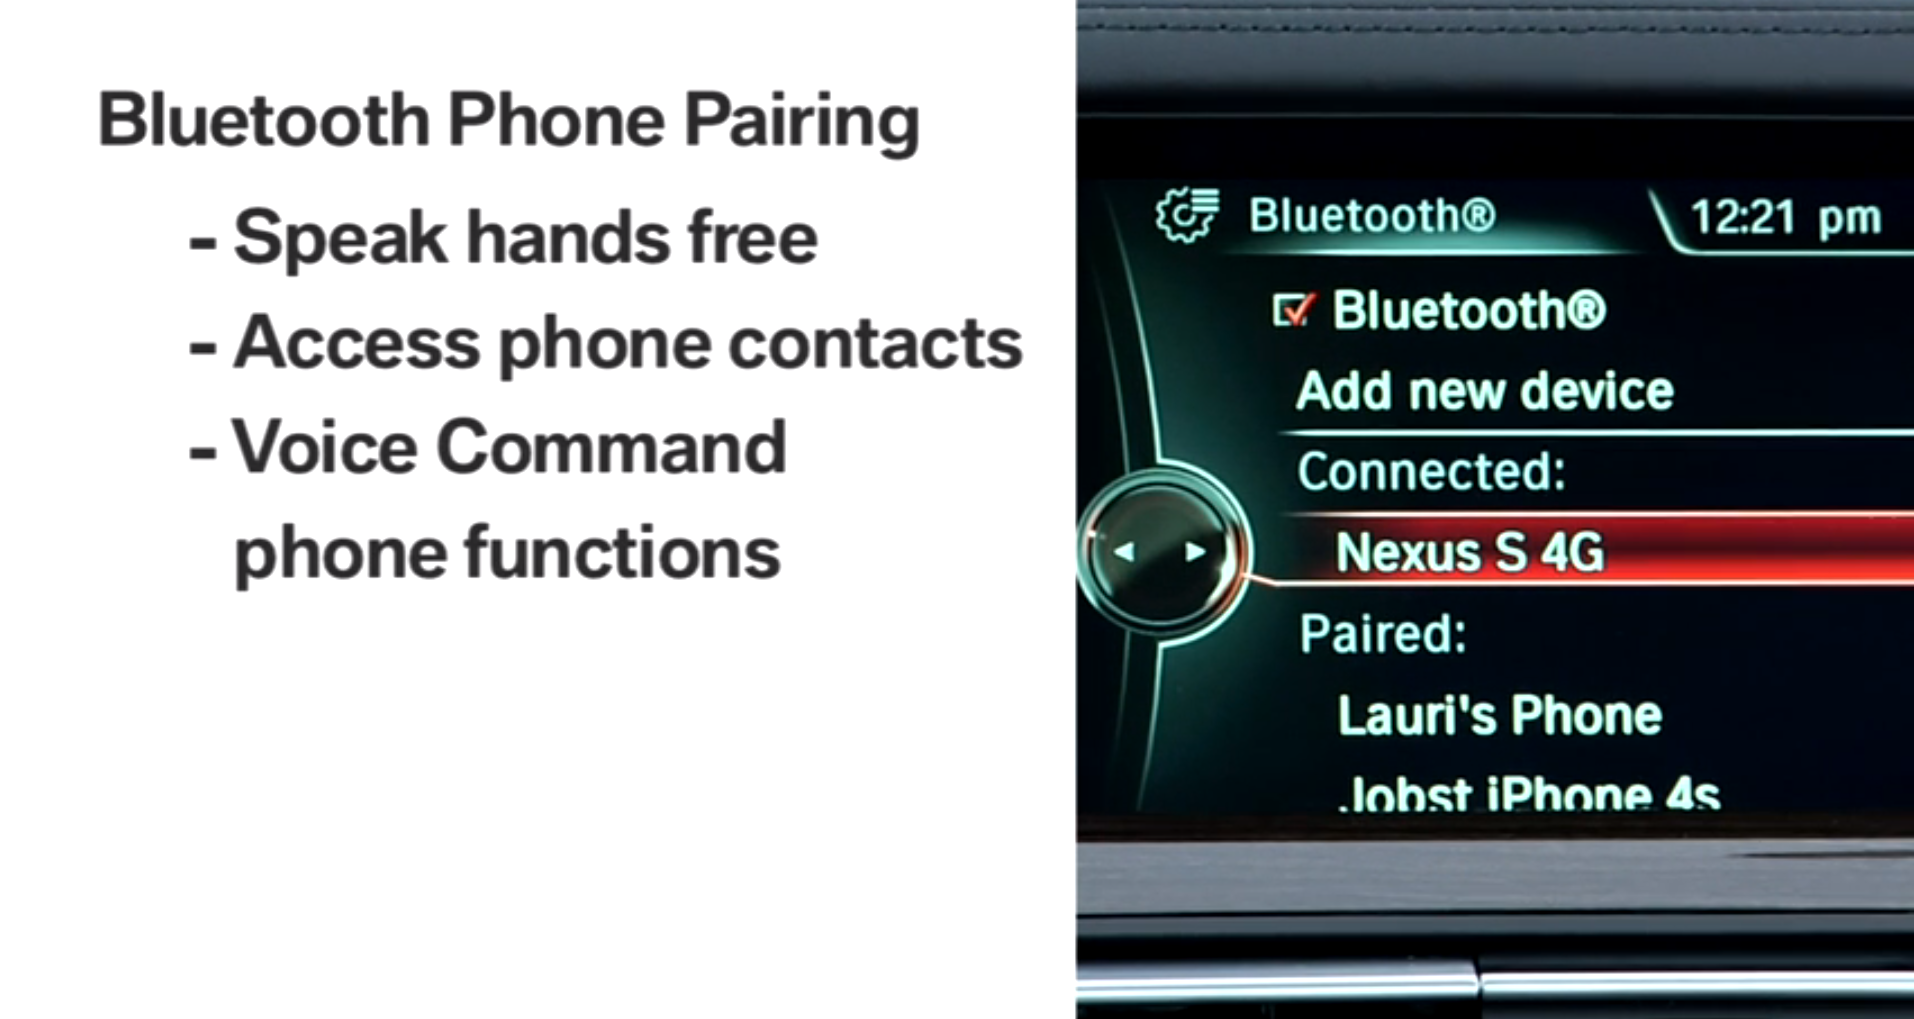 how to connect samsung tv bluetooth to phone